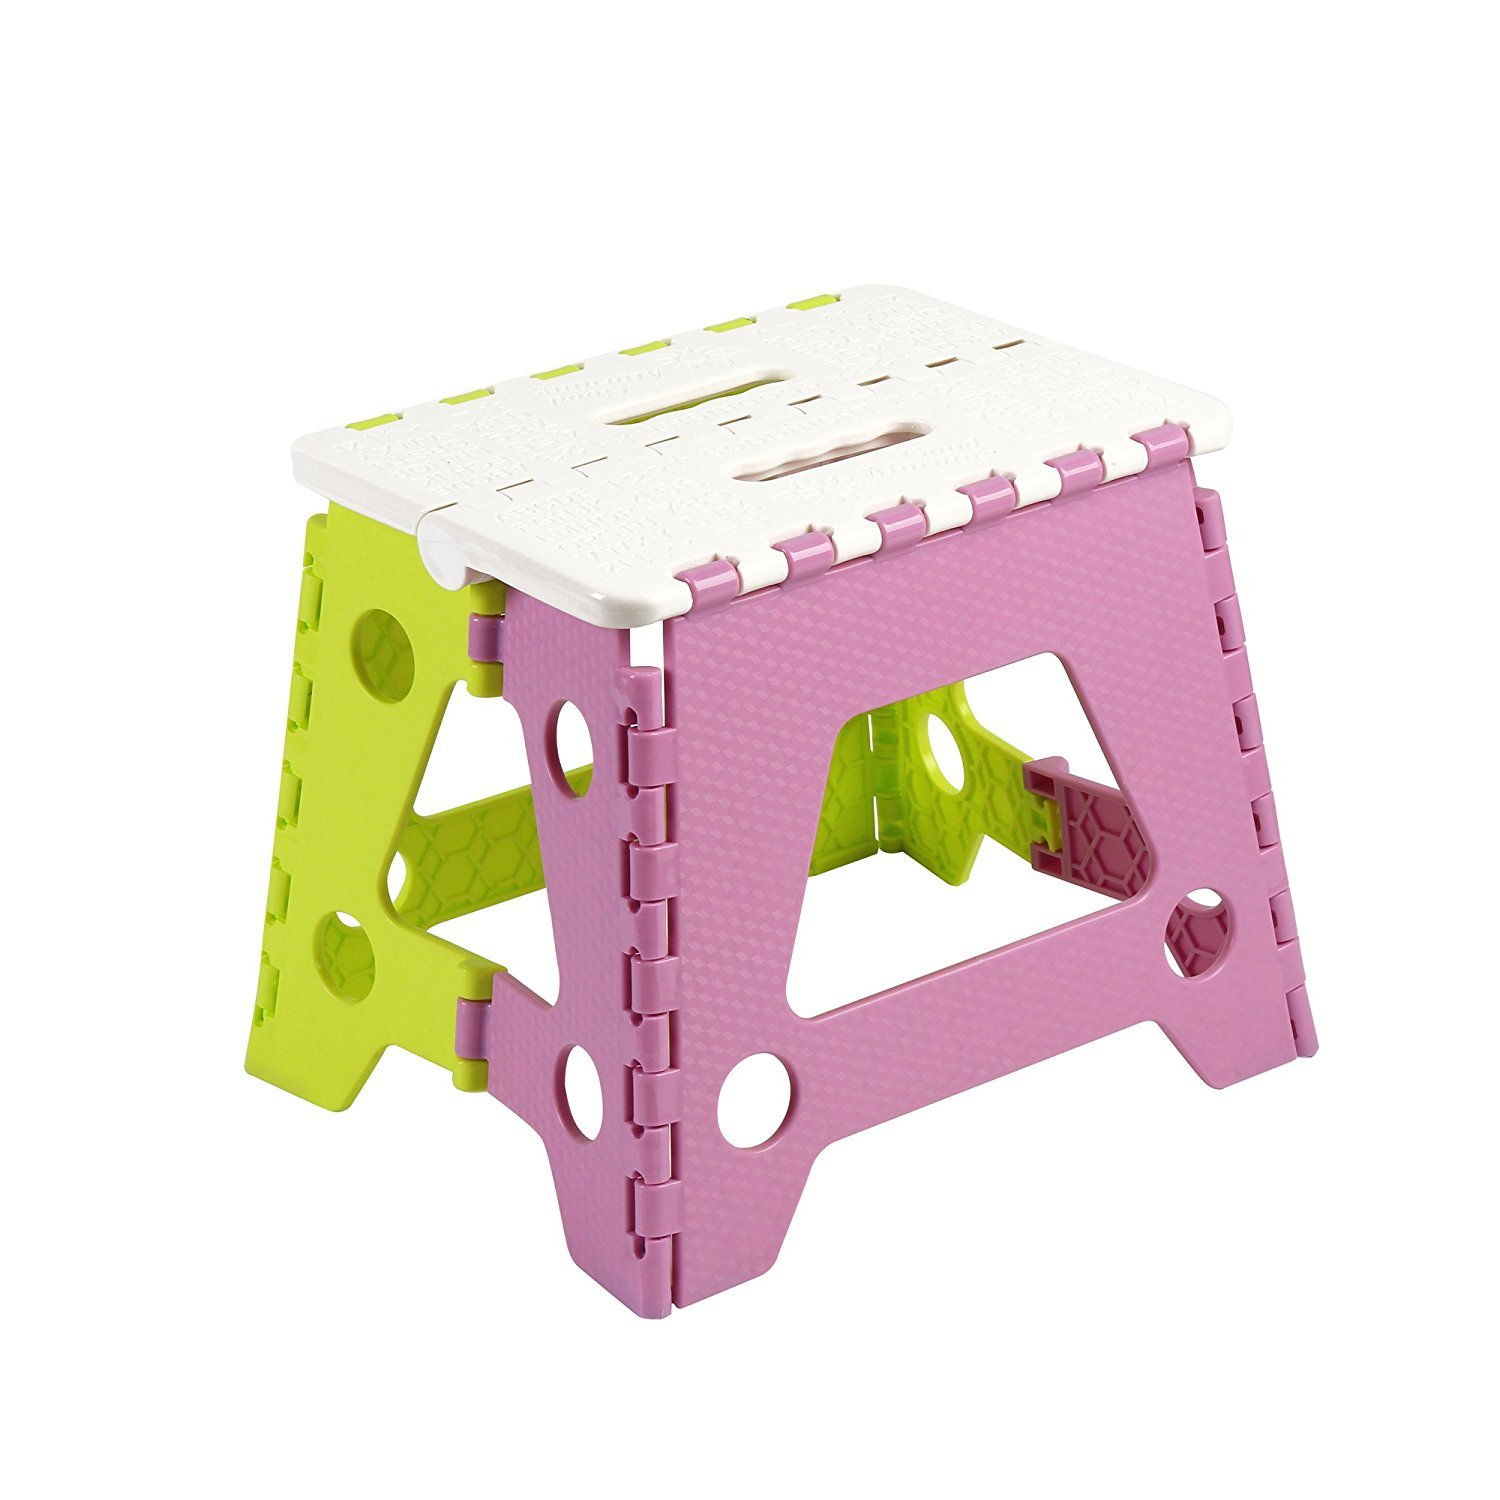 Plastic Folding Step Stool Home Furniture Design